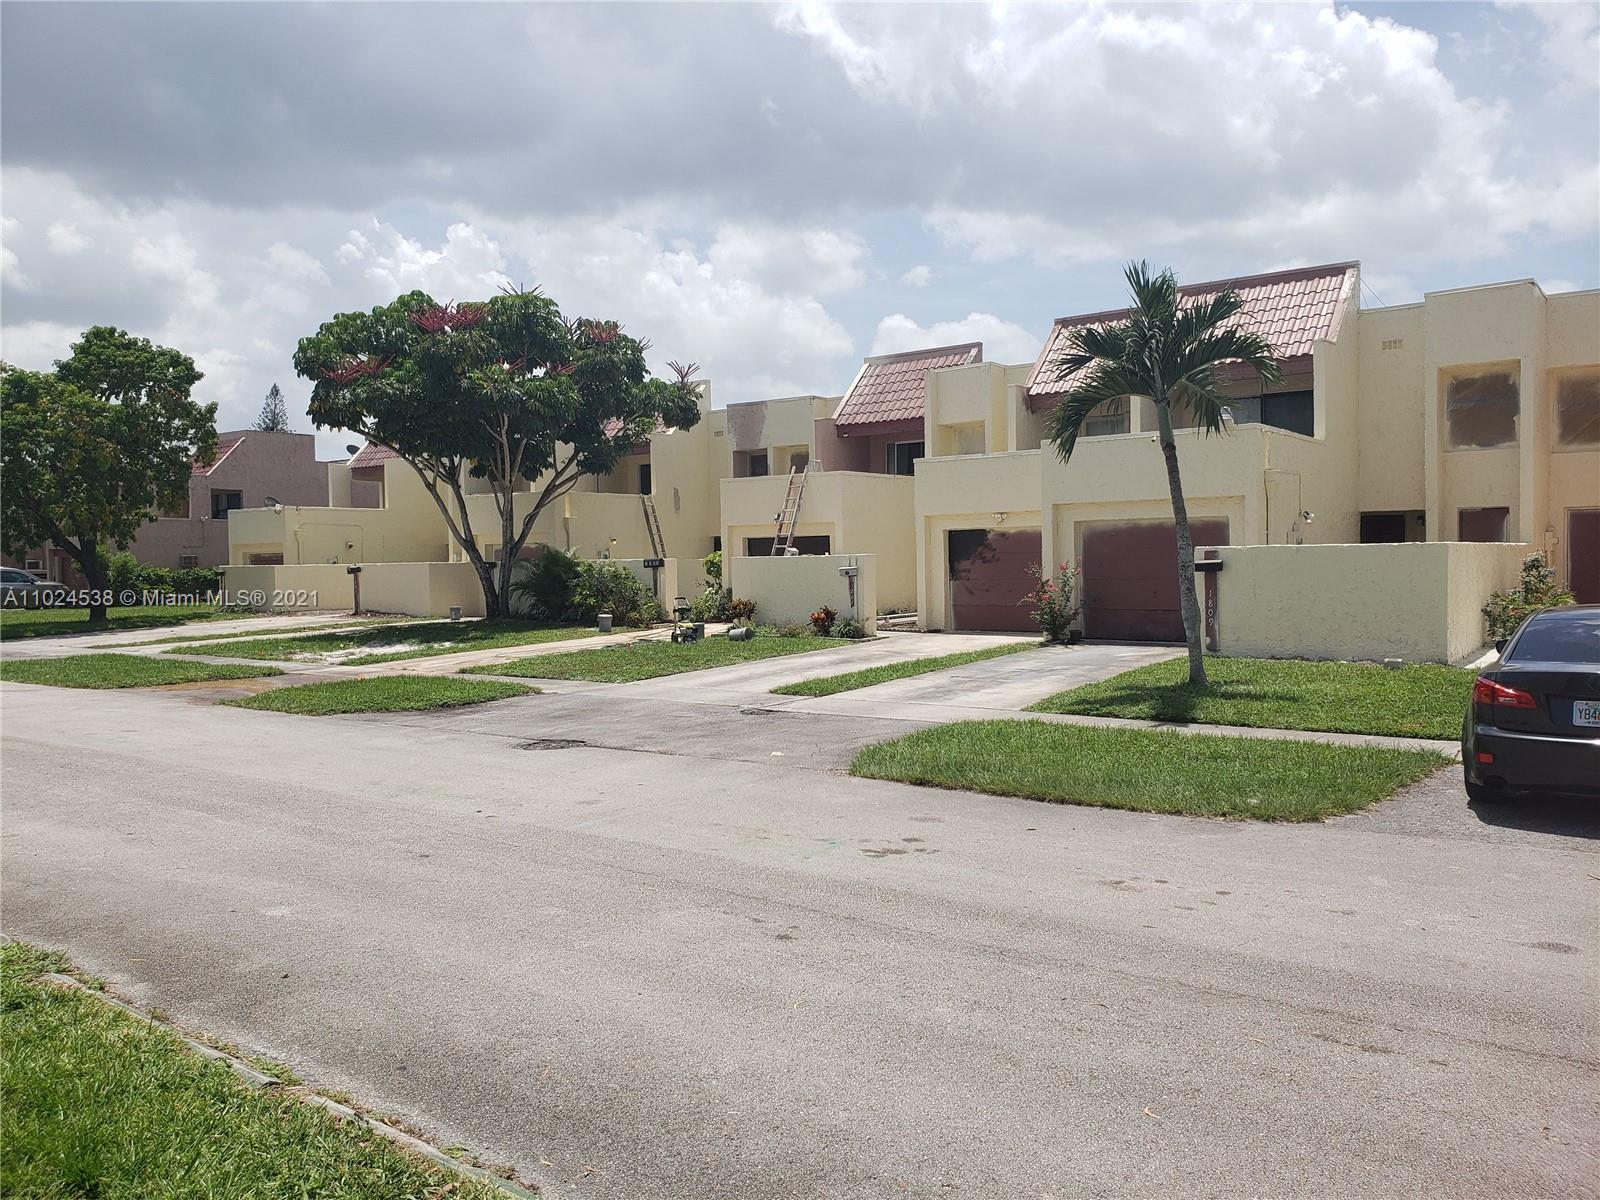 Waterfront townhouse with 2100 sq. ft.  First floor includes backyard living, room, dining room, kitchen, bathroom, laundry room and garage. Upper level includes 3 bedrooms with two full baths and 2 balconies . Located near schools, shopping, Easy access to major roads and highways.